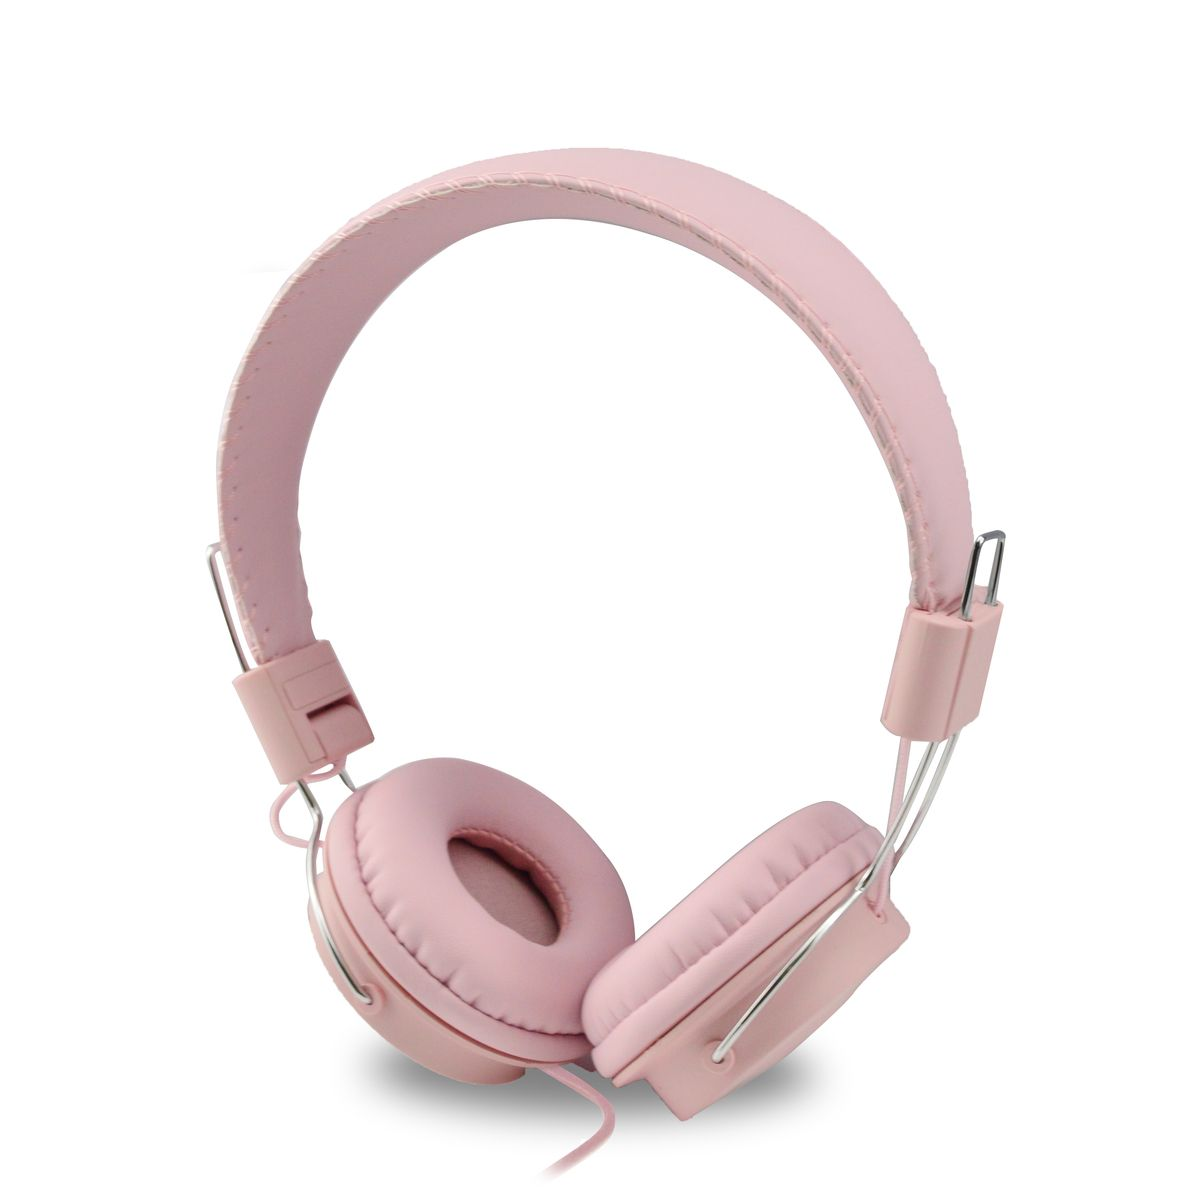 Q1296 - Rose - Casque audio